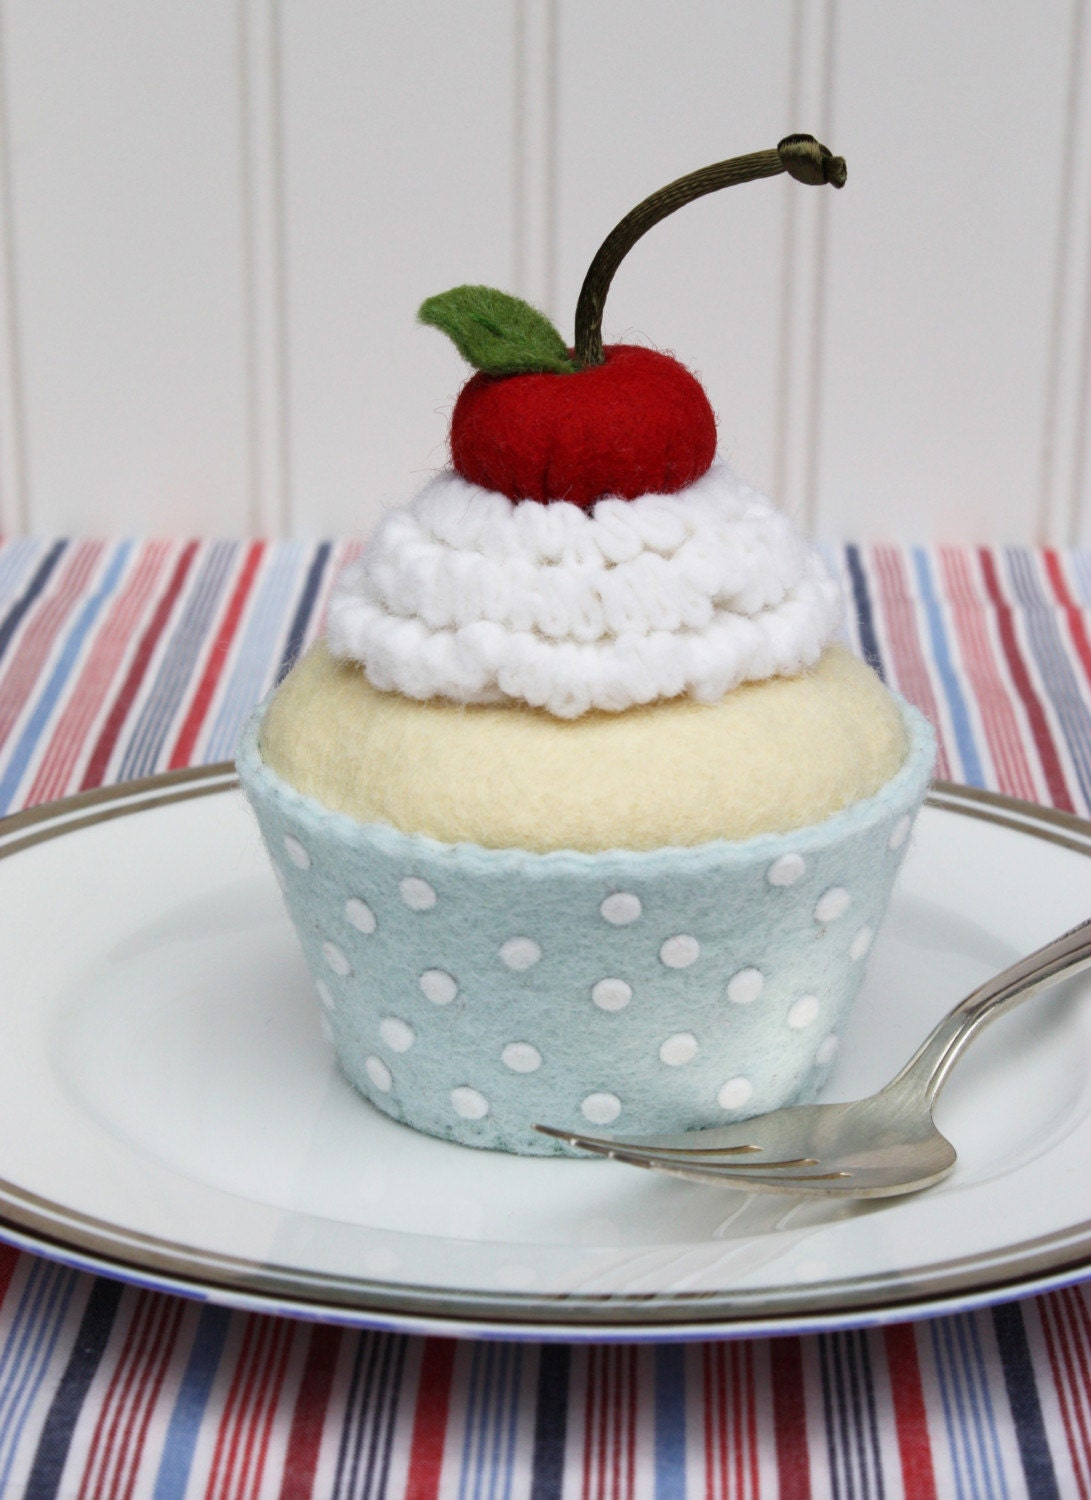 Patriotic Felt Cupcake With White Whipped Cream, Cherry And Blue Liner